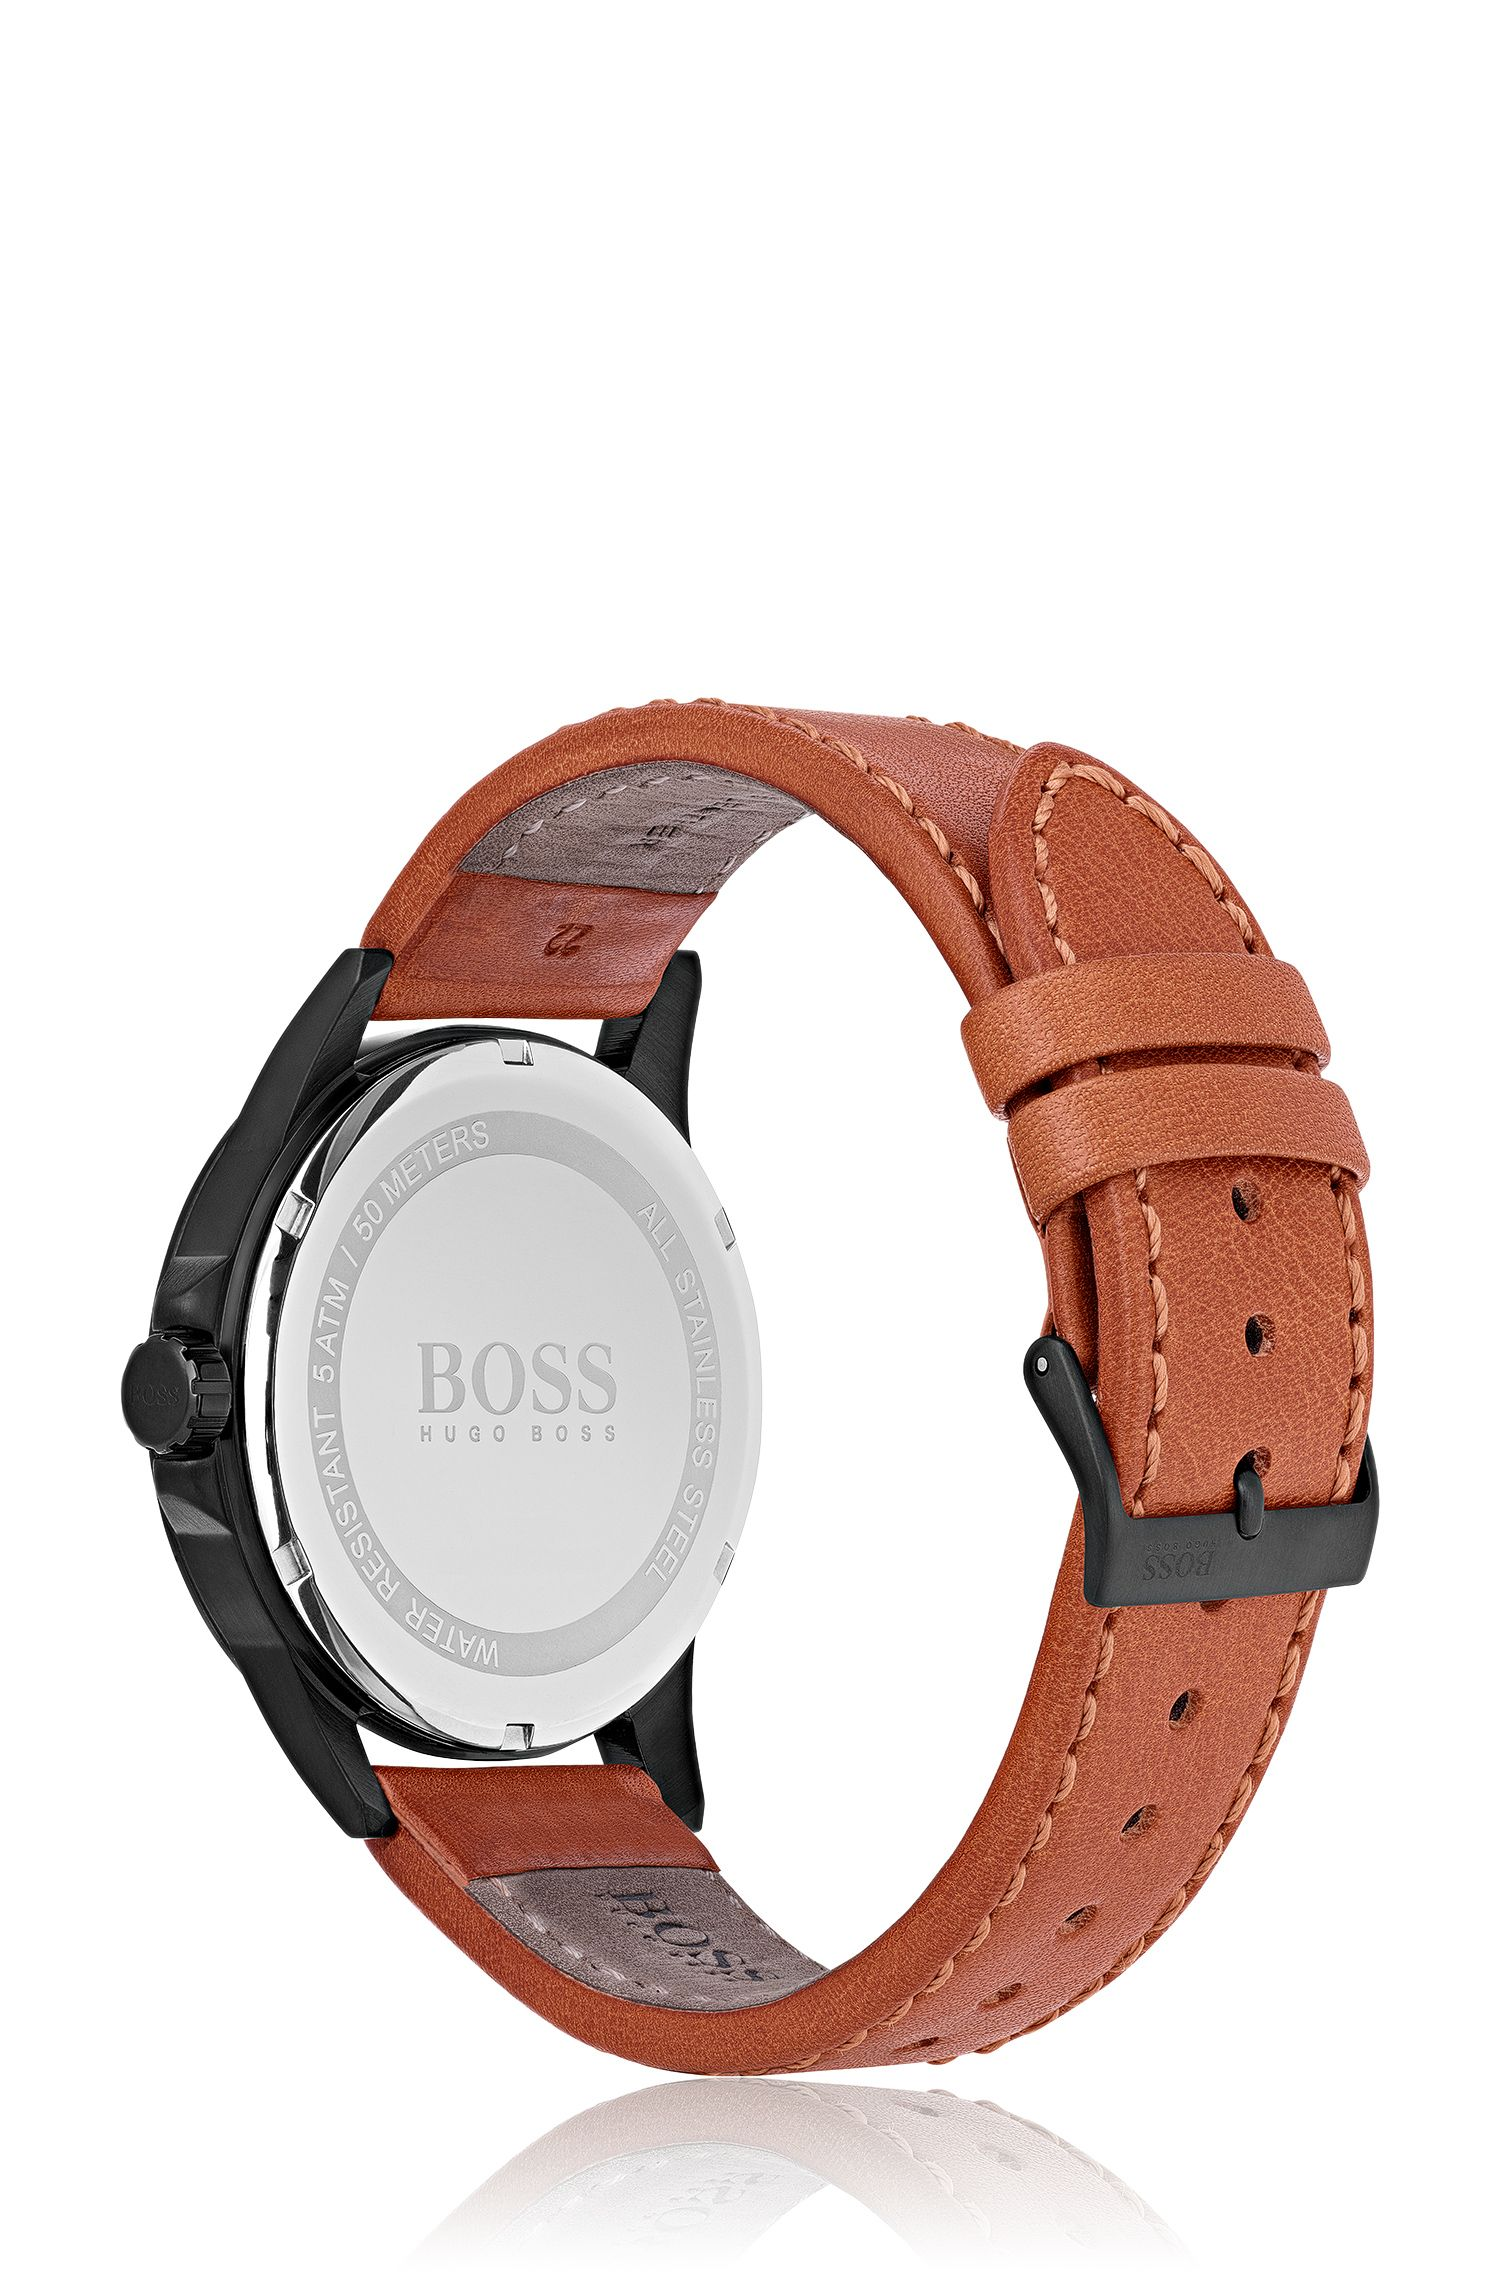 Black-plated watch with vachetta leather strap